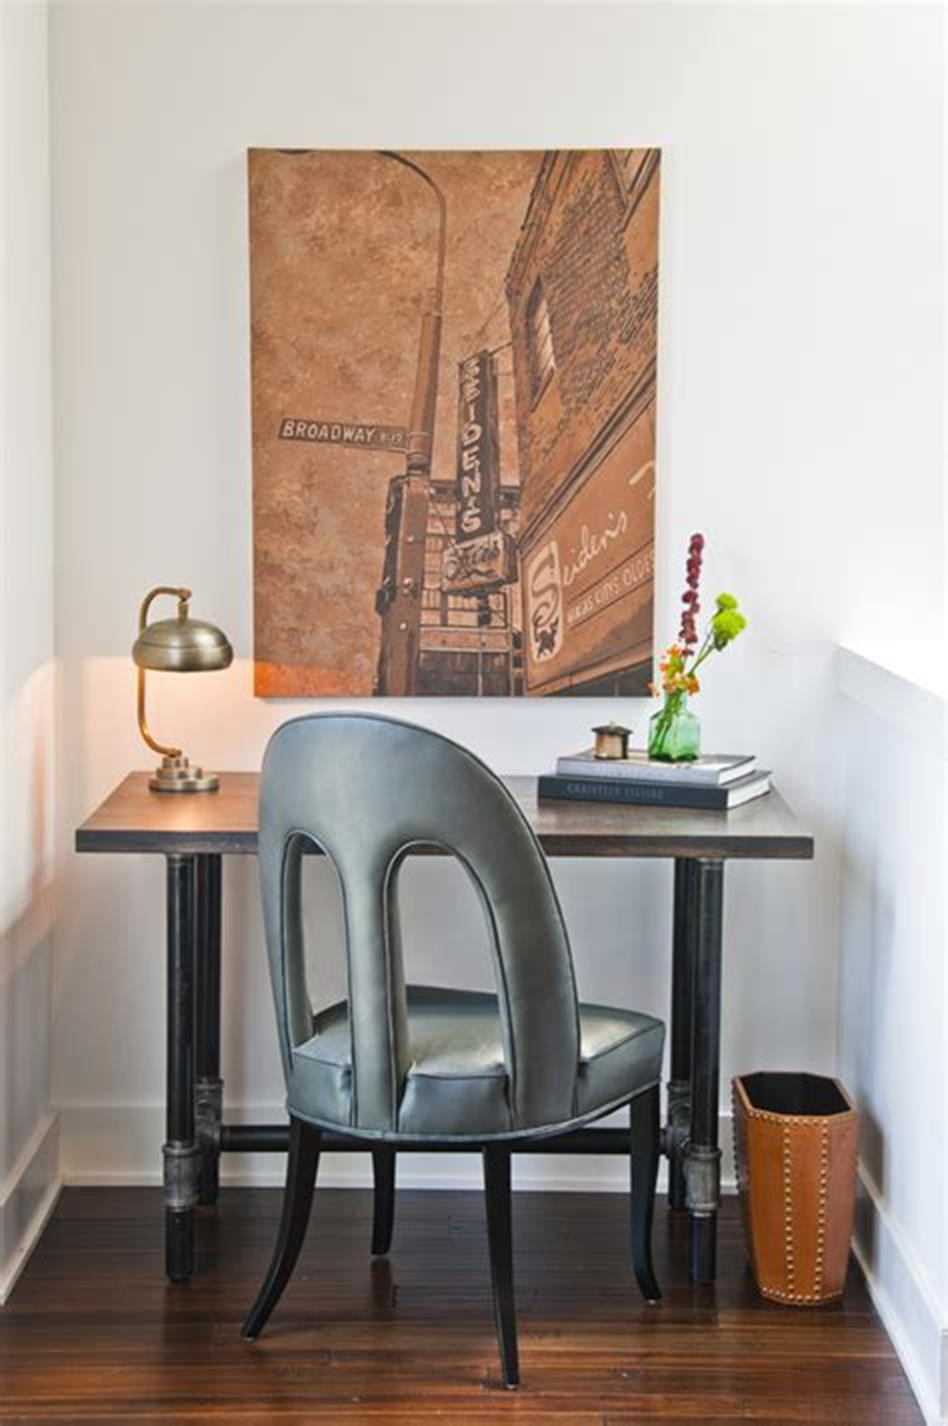 50 Best Small Space Office Decorating Ideas On a Budget 2019 15